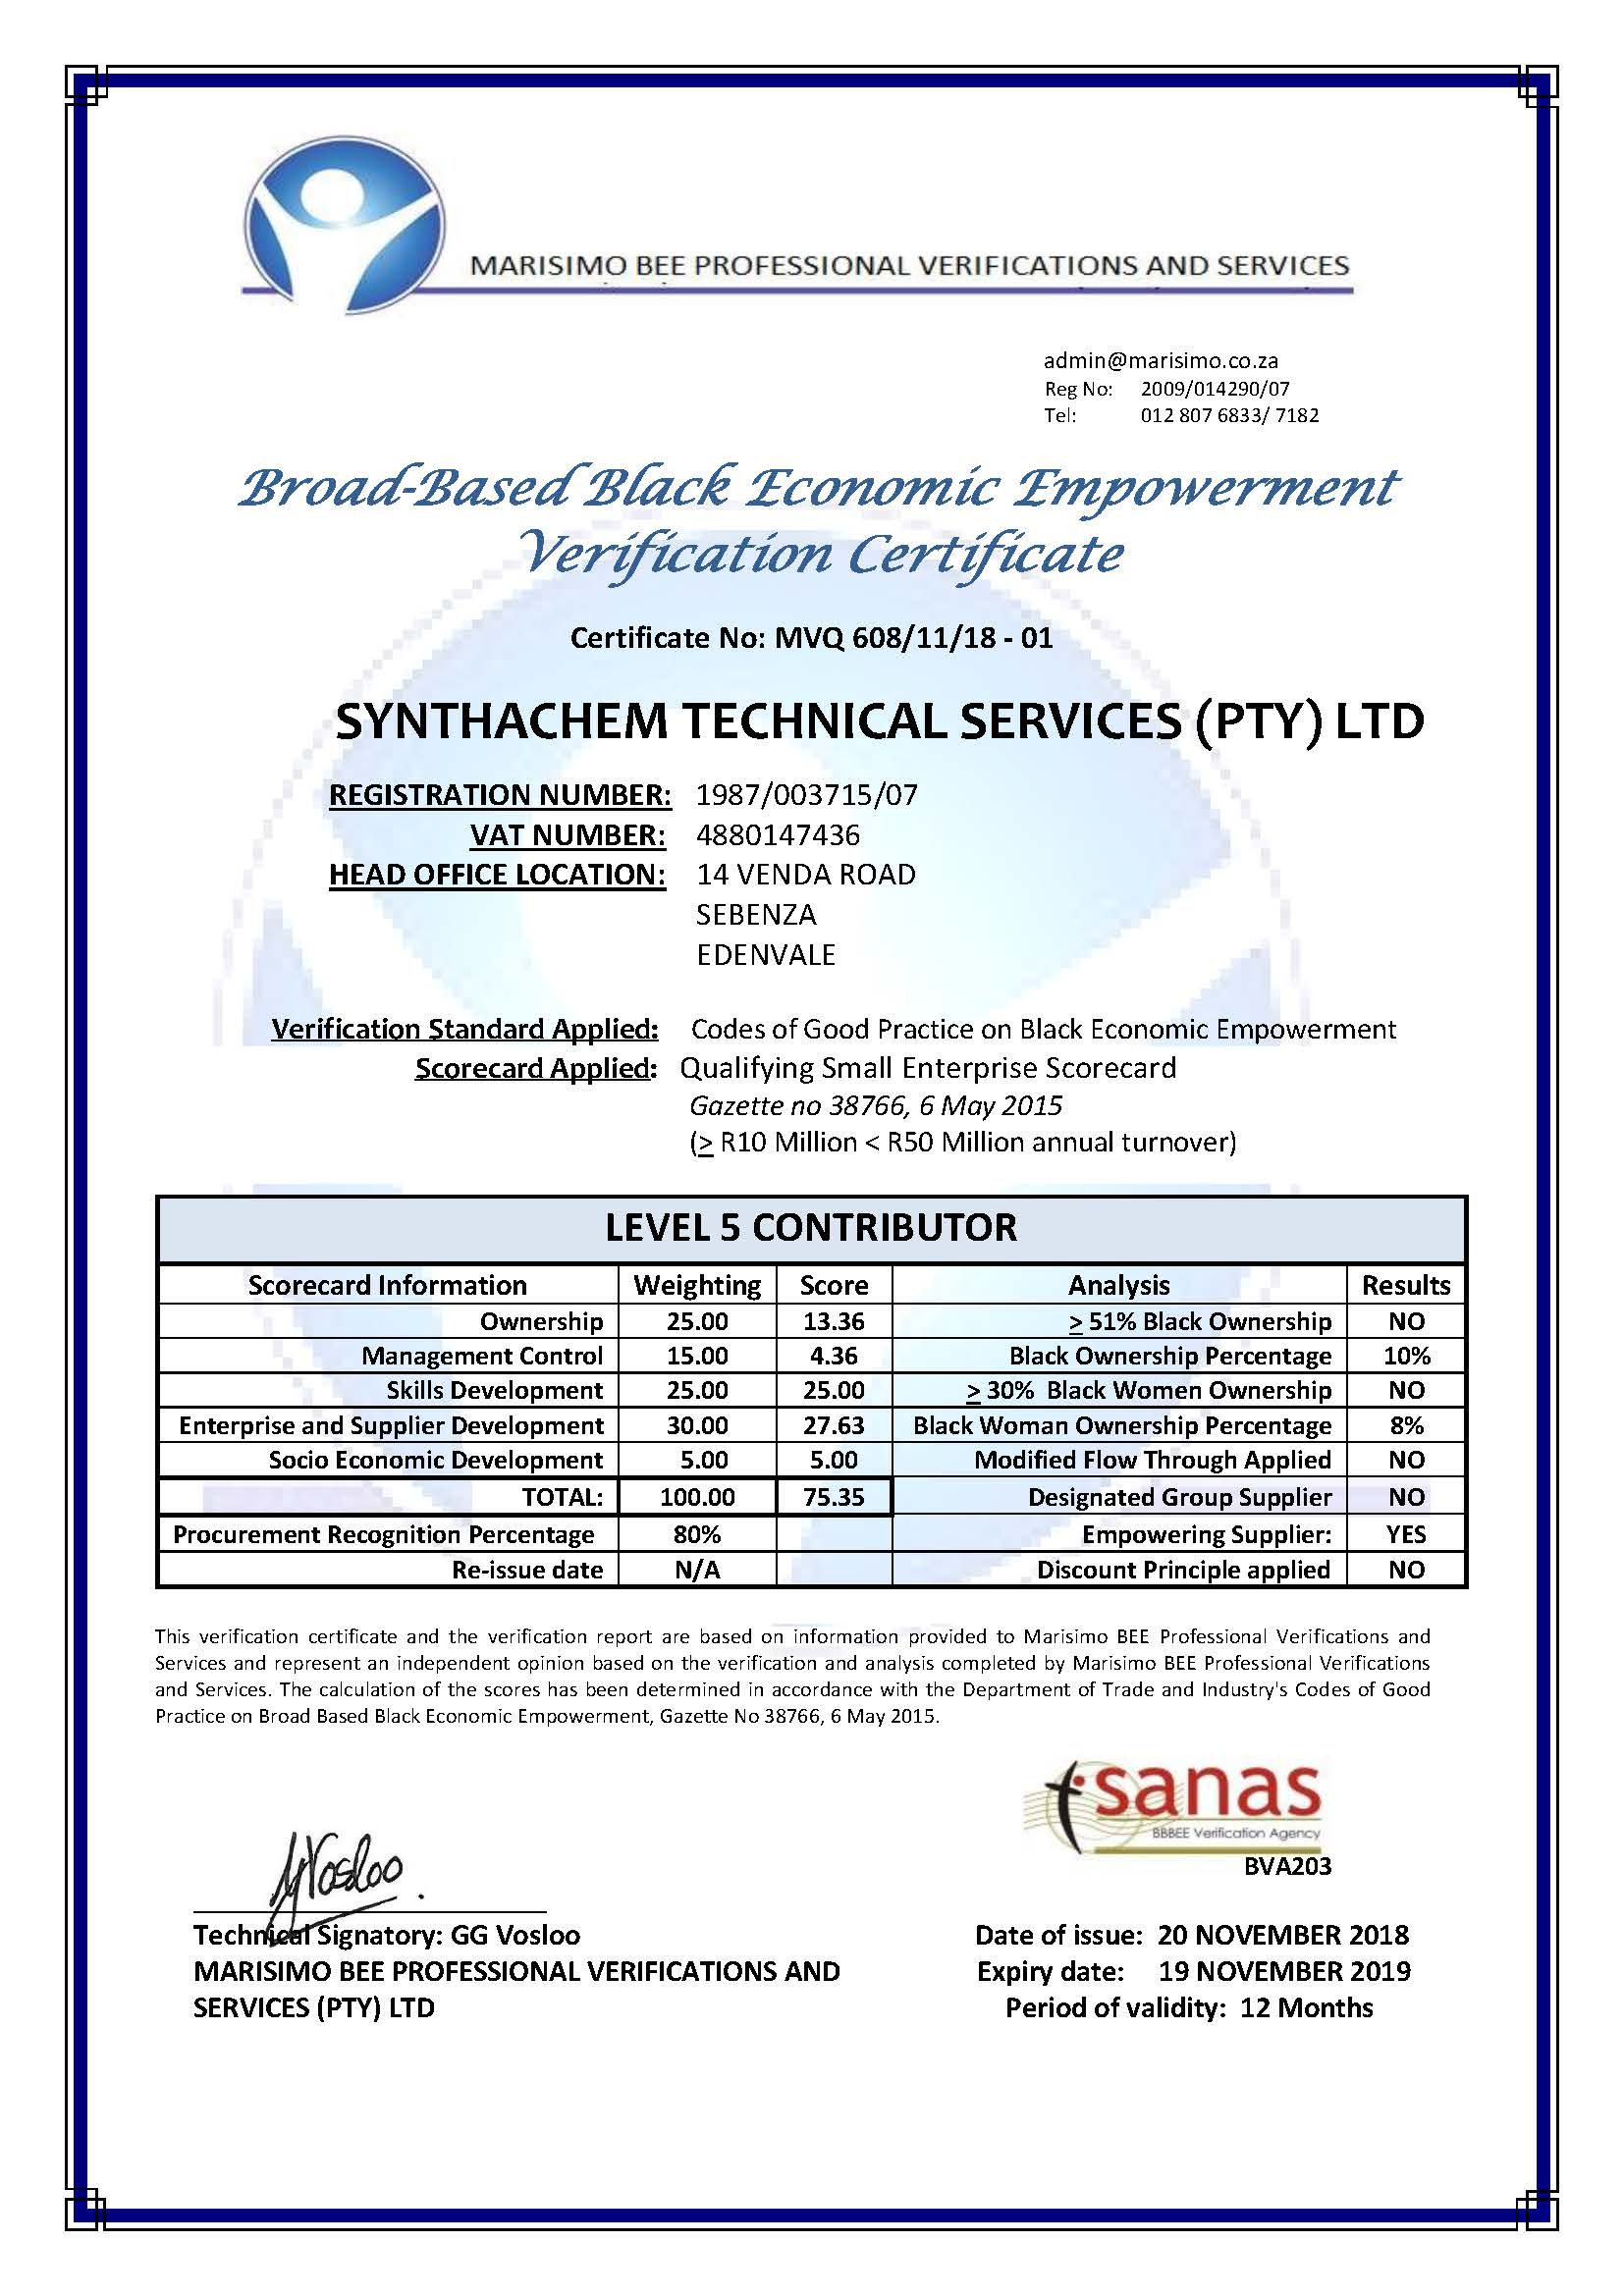 BEE-CERTIFICATE-SYNTHACEM-TECHNICAL-SERVICES-PTY-LTD.jpg